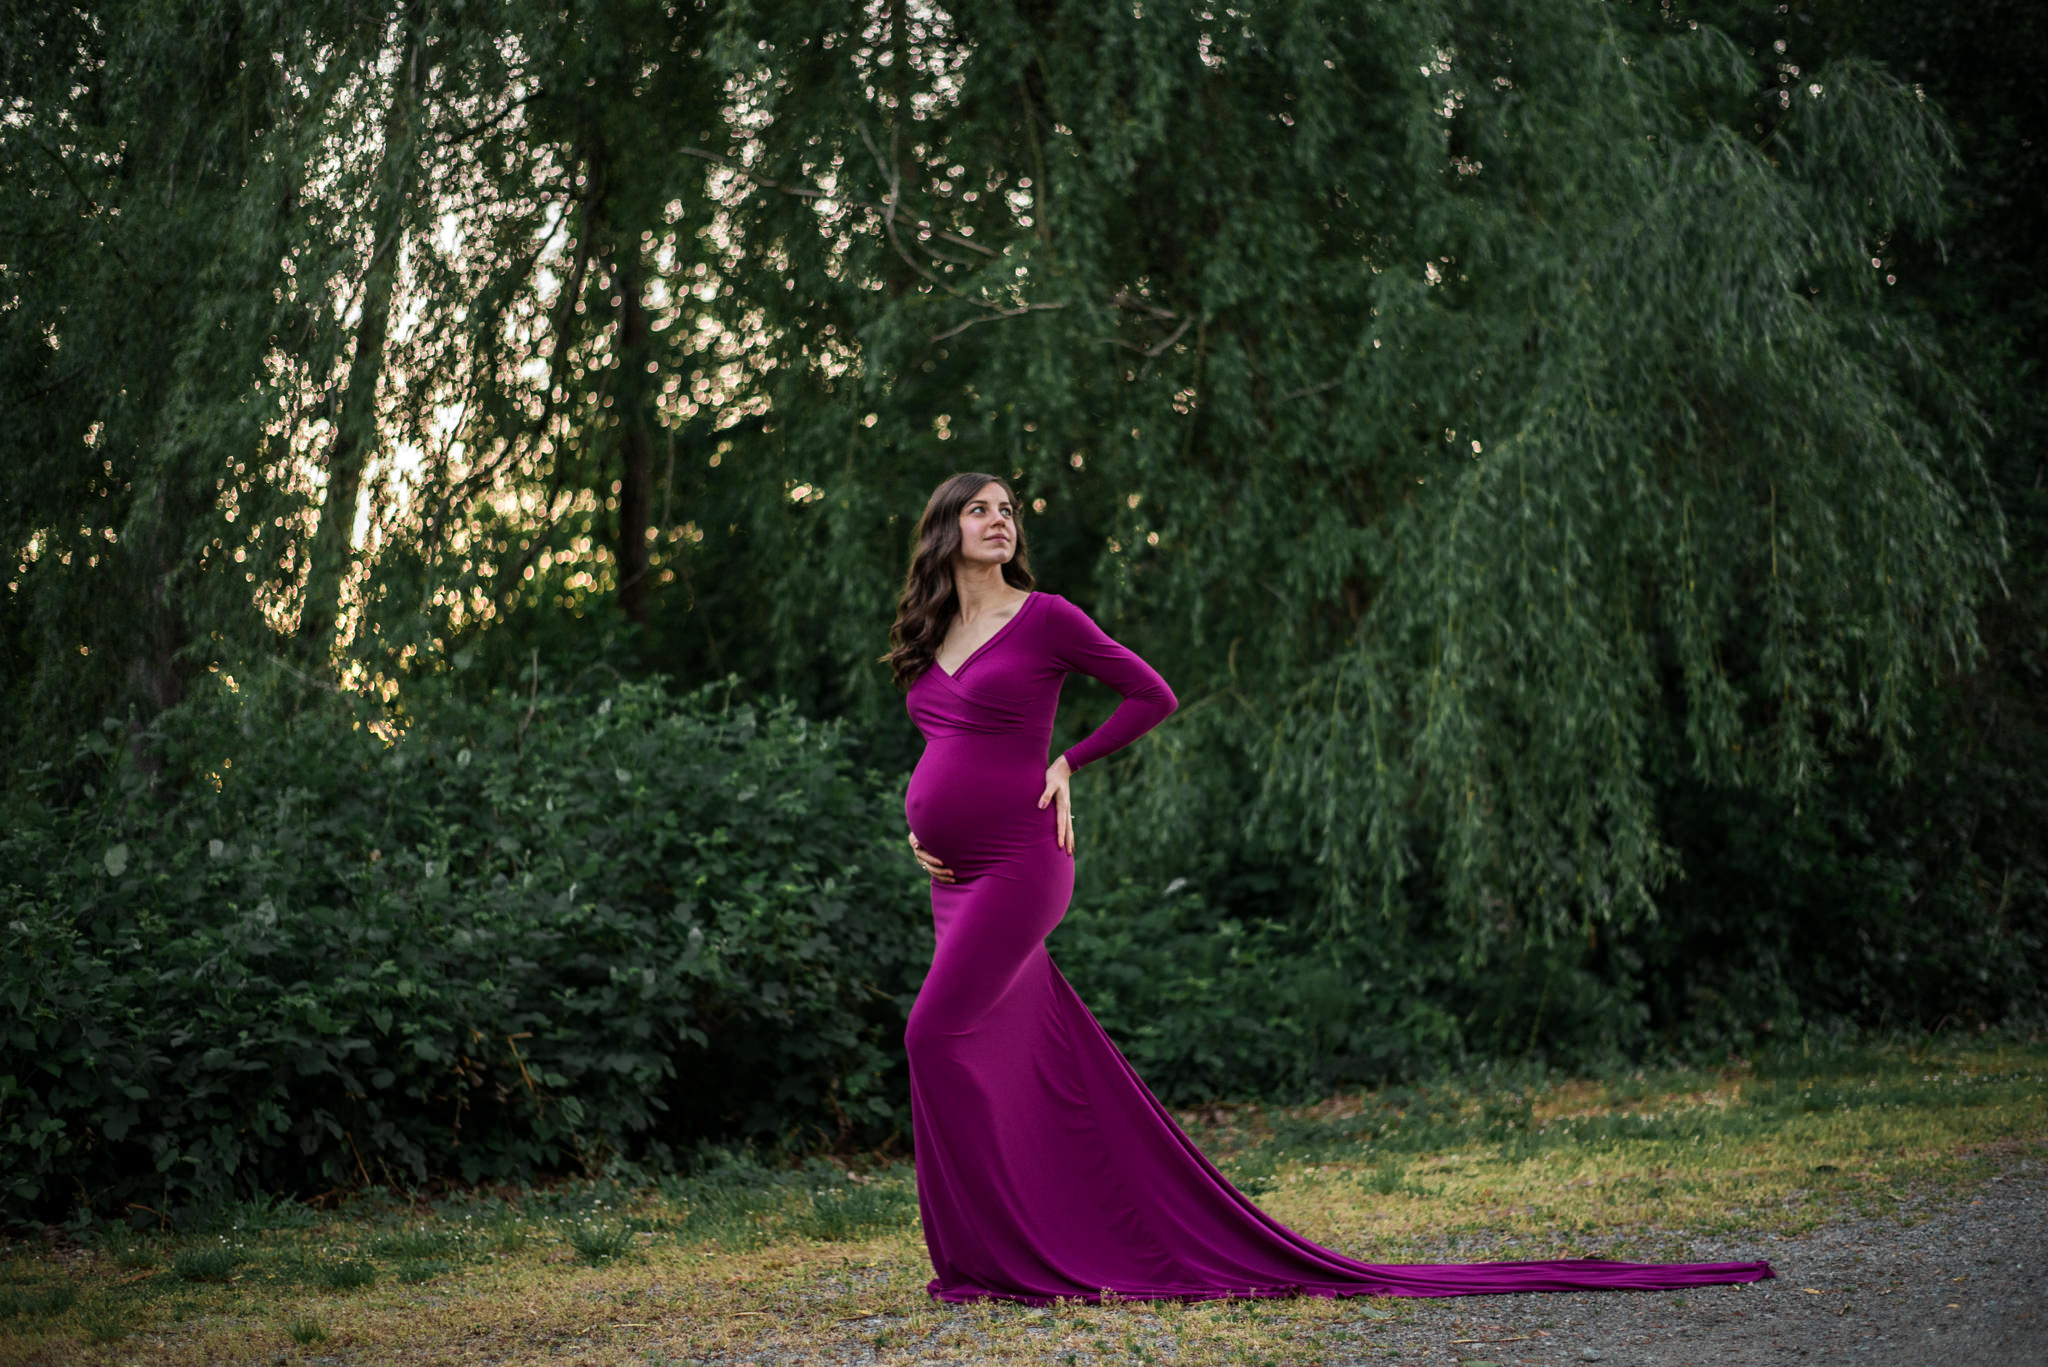 Pregnant woman standing in front of a tree in a park in Burnaby BC